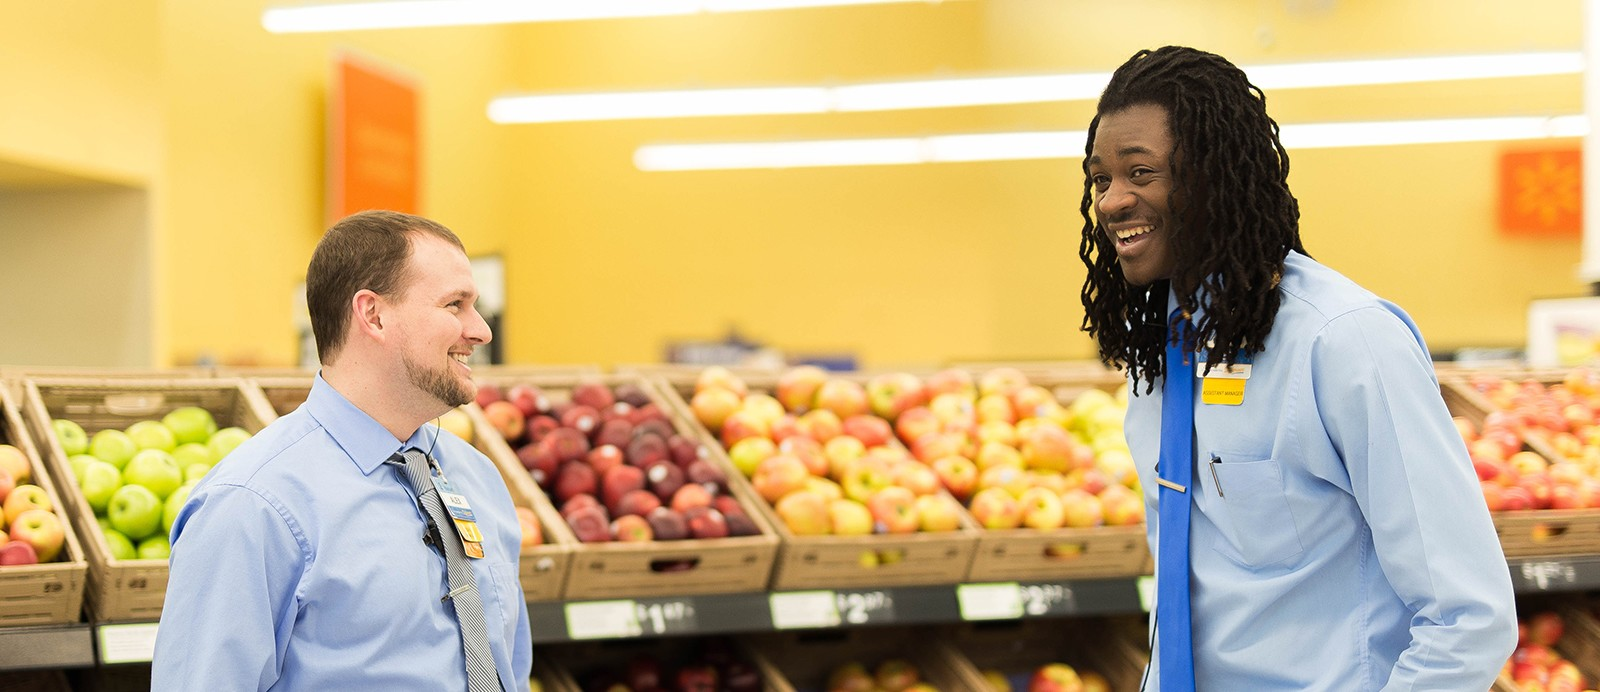 Store Management Jobs Walmart Careers